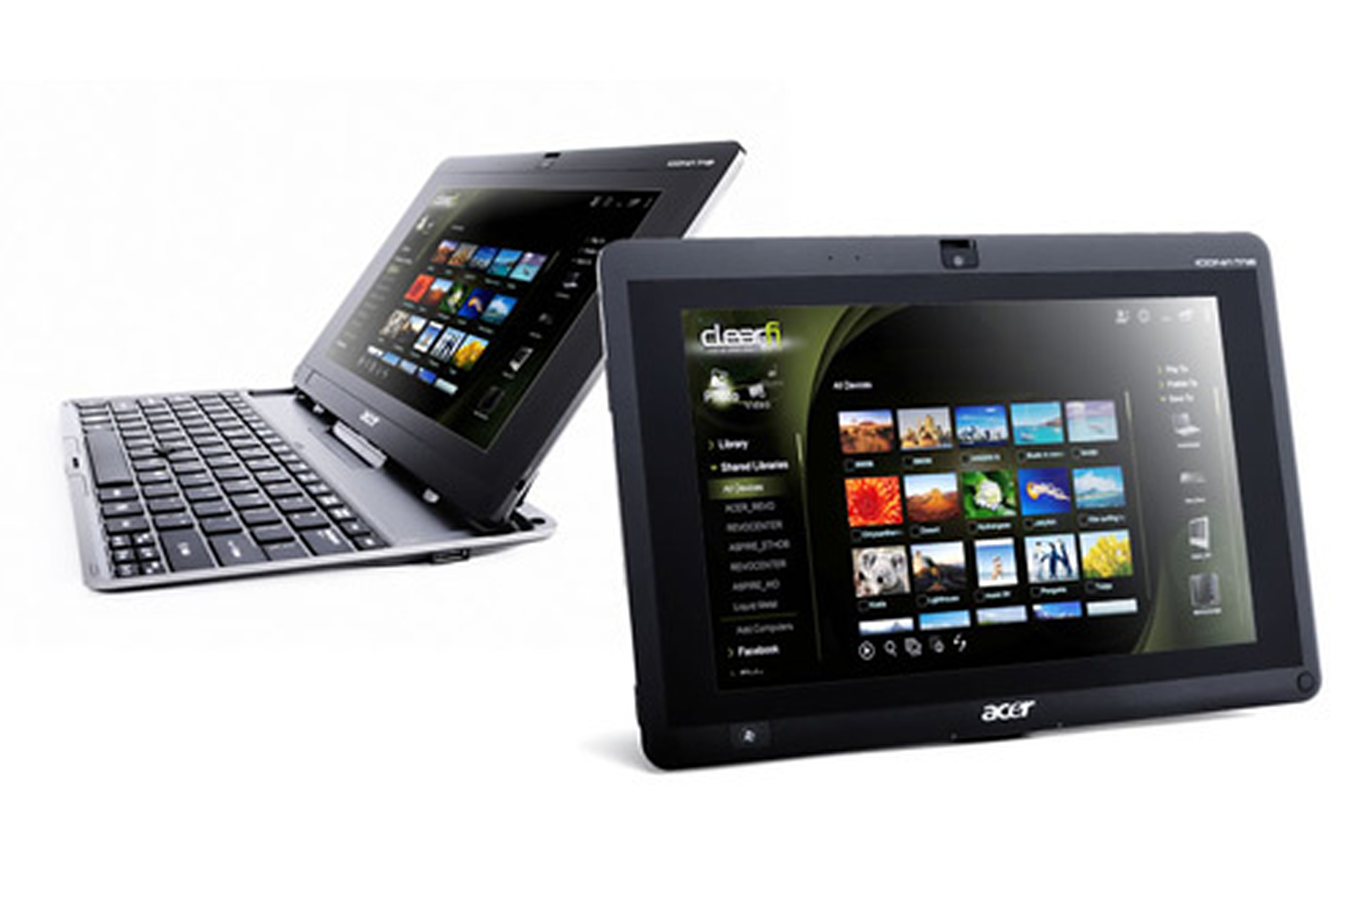 tablette tactile acer iconia tab w500 c52g03iss clavier 3455033 darty. Black Bedroom Furniture Sets. Home Design Ideas